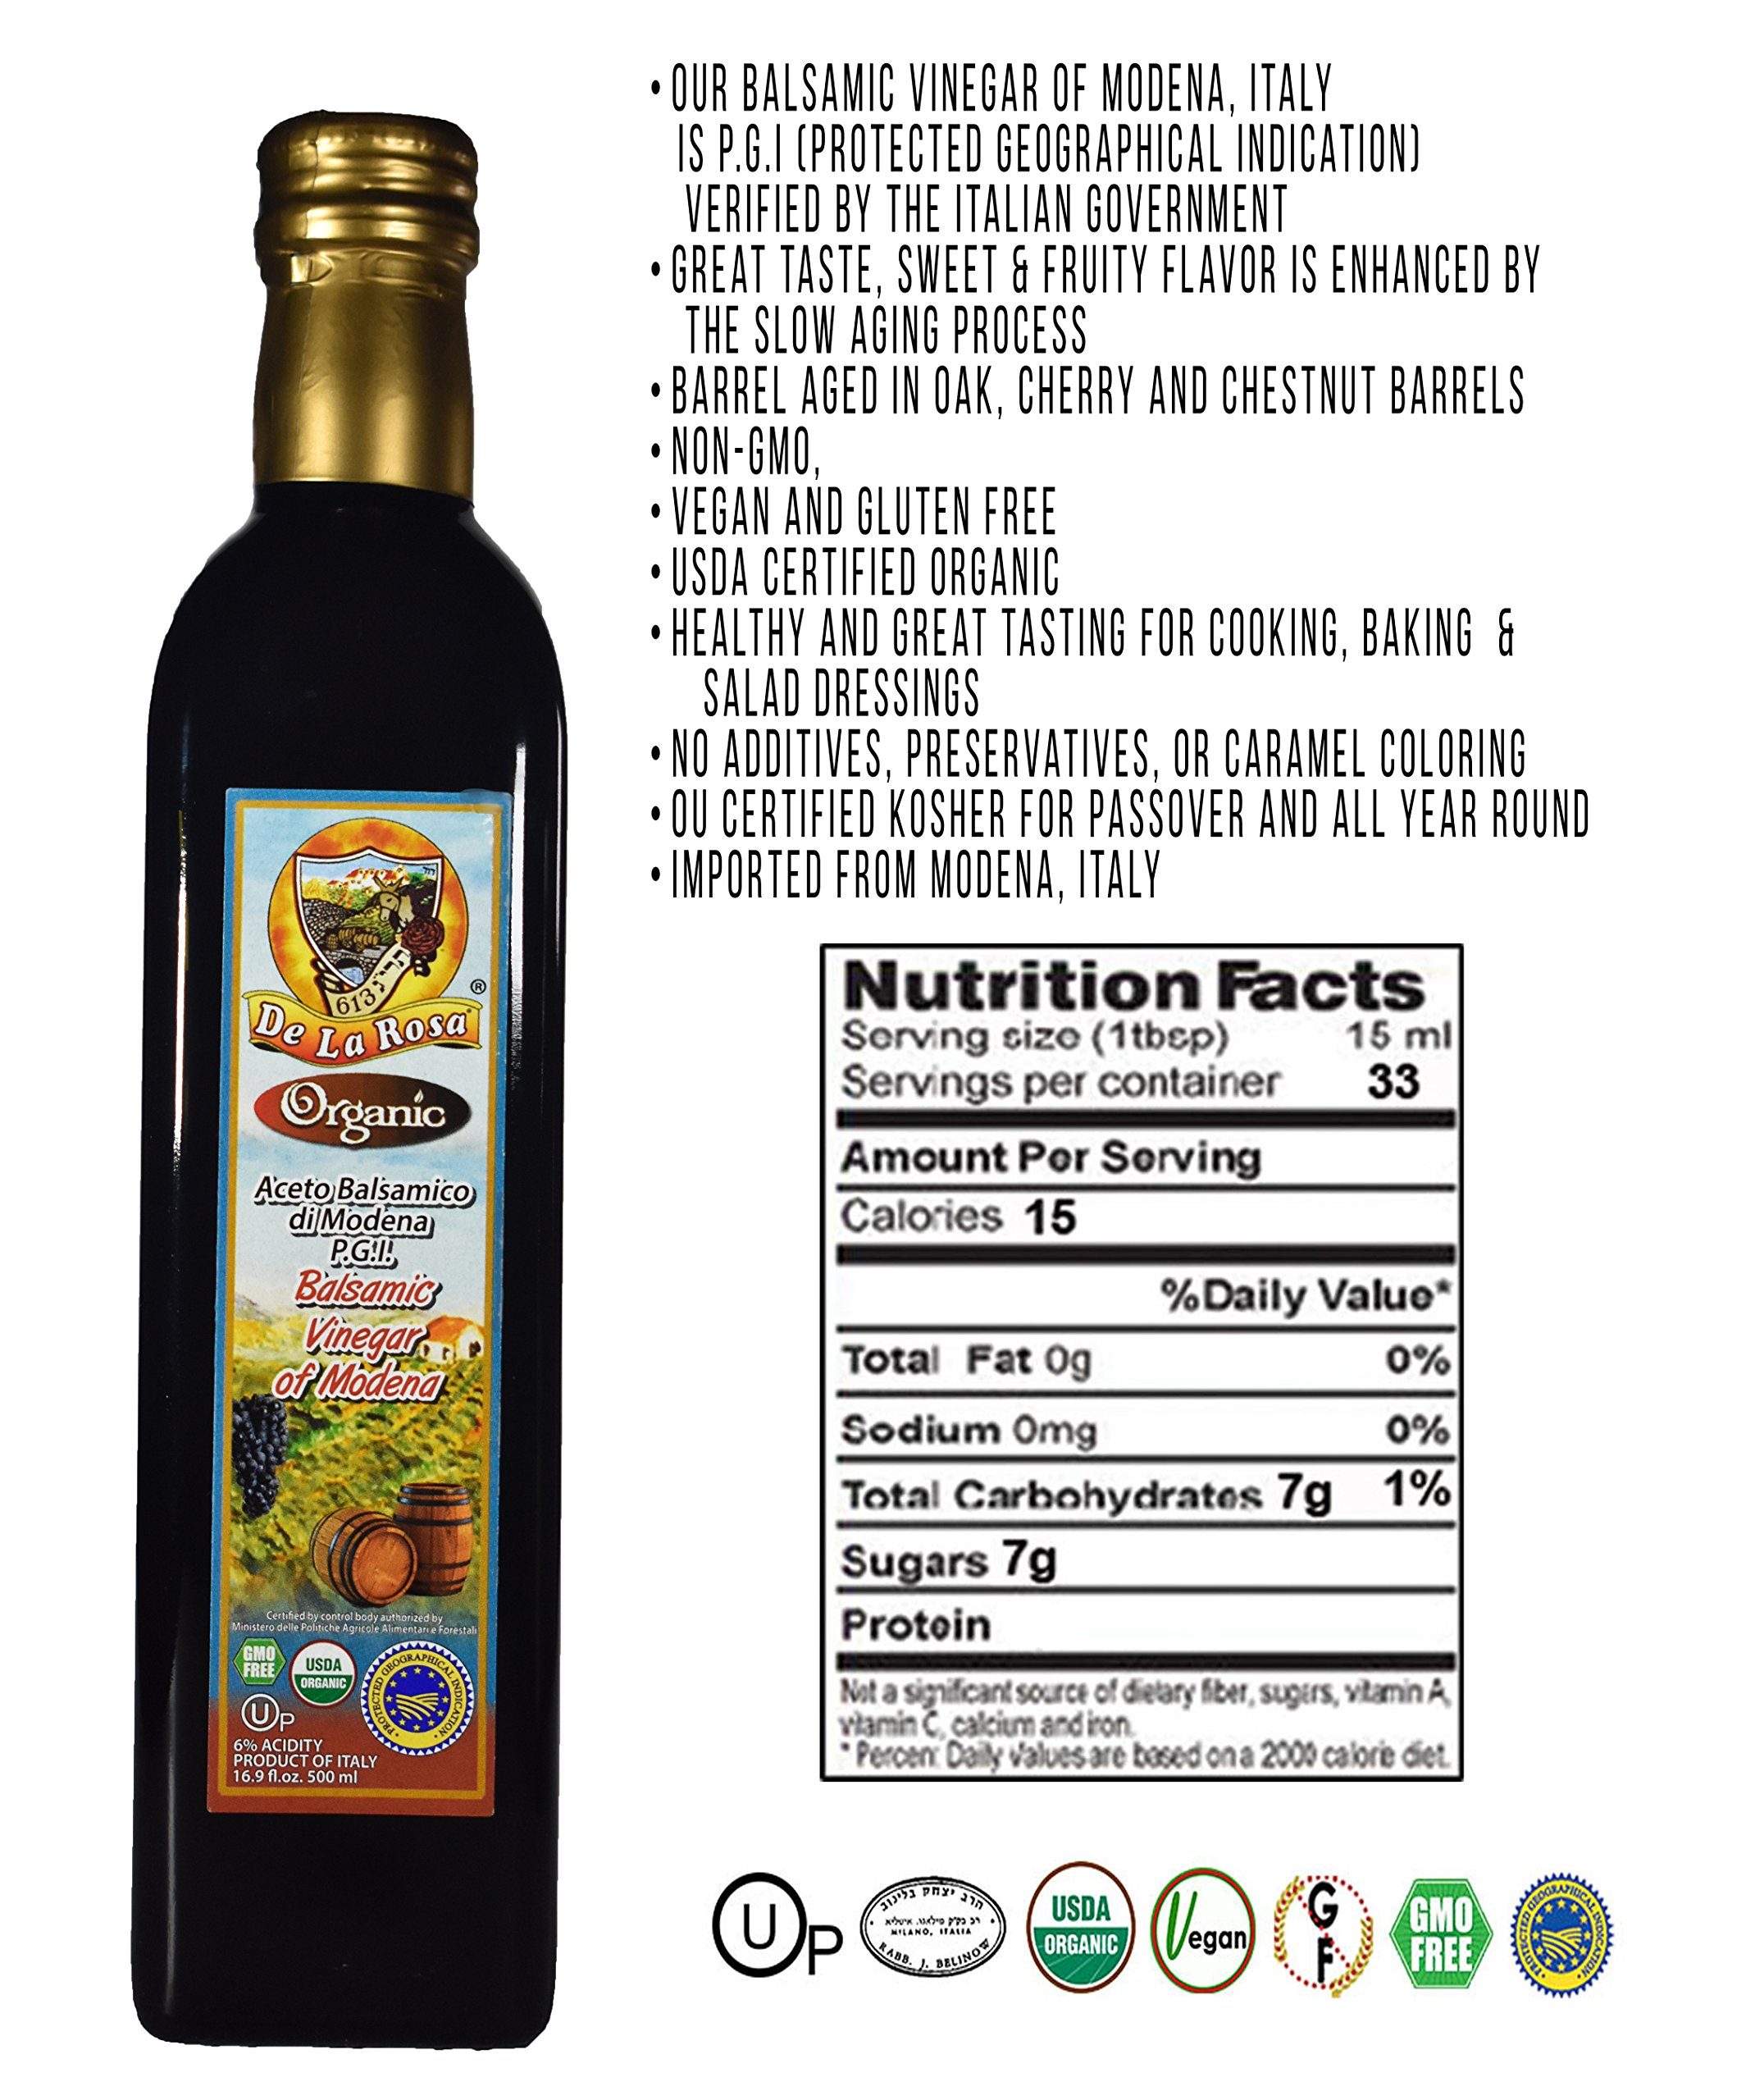 De La Rosa Real Foods & Vineyards - Organic Balsamic Vinegar of Modena (16.9 oz/500 ml) 2 100% Organic Balsamic Vinegar of Modena Kosher for Passover & all year around USDA Certified Organic. Vegan. GMO-Free. Gluten Free. No additives or Preservatives added